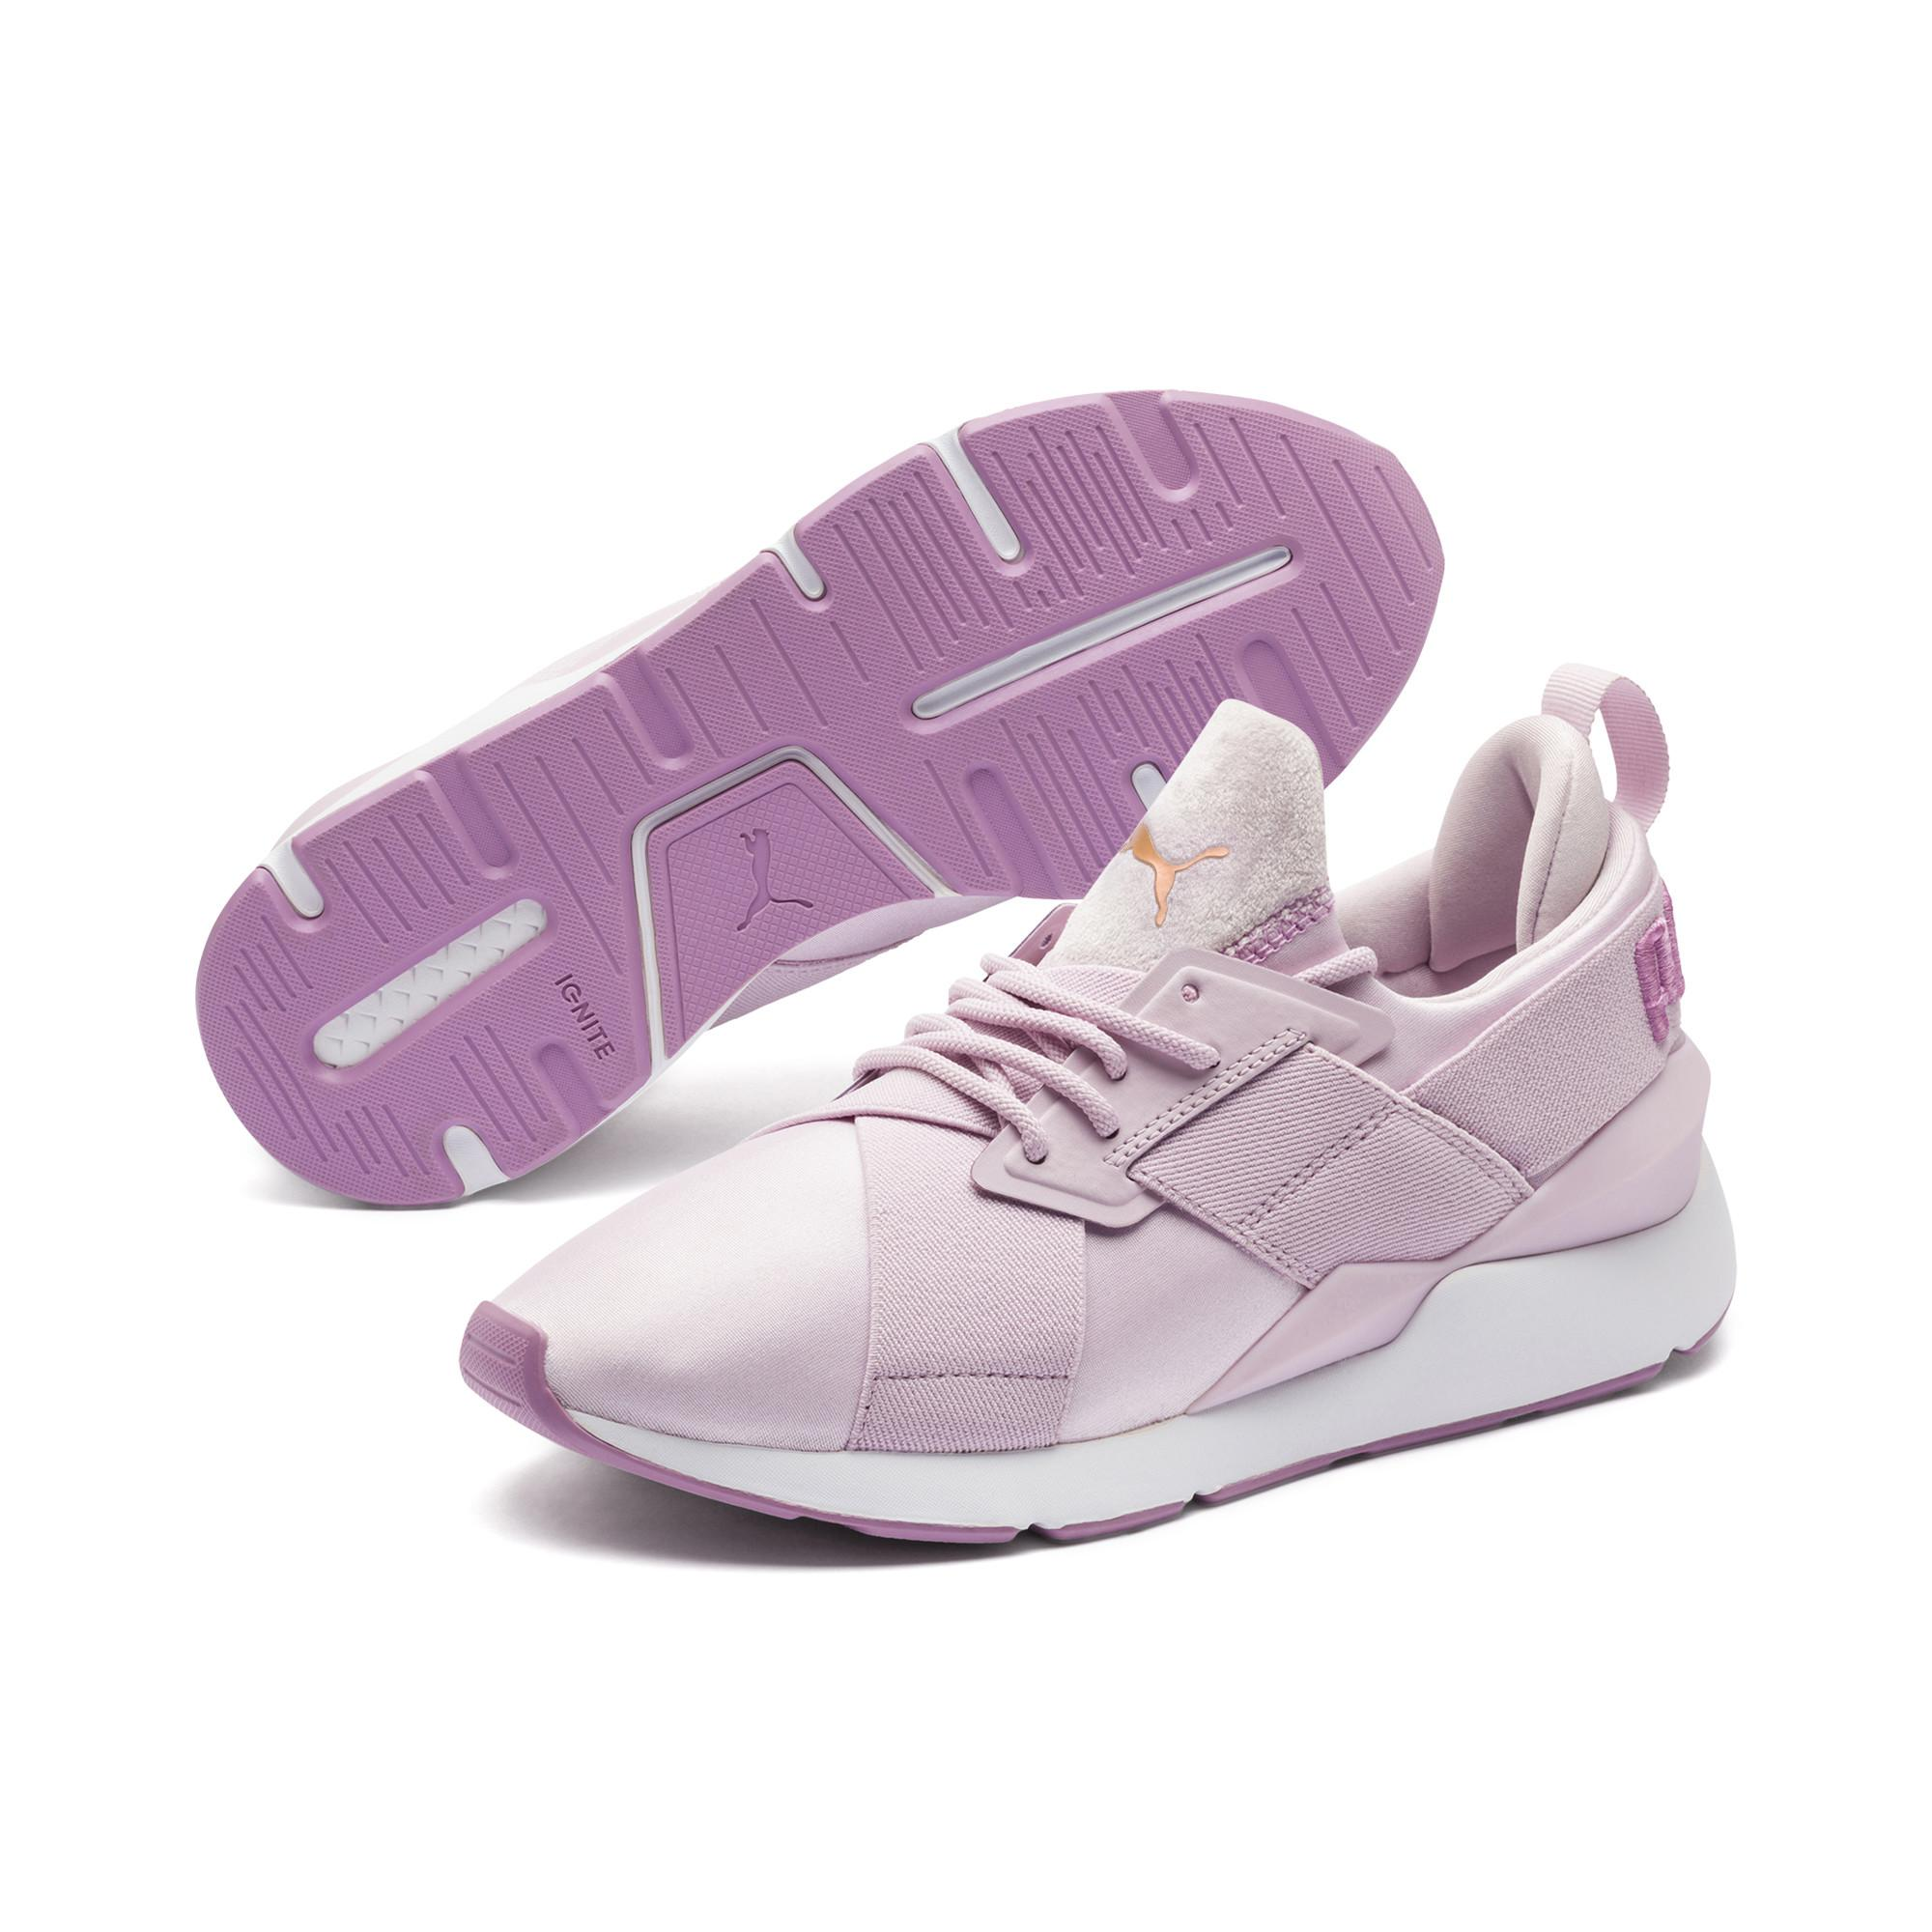 af596ee2d05 Lyst - PUMA Muse Satin Ii Women s Sneakers in Purple - Save 51%